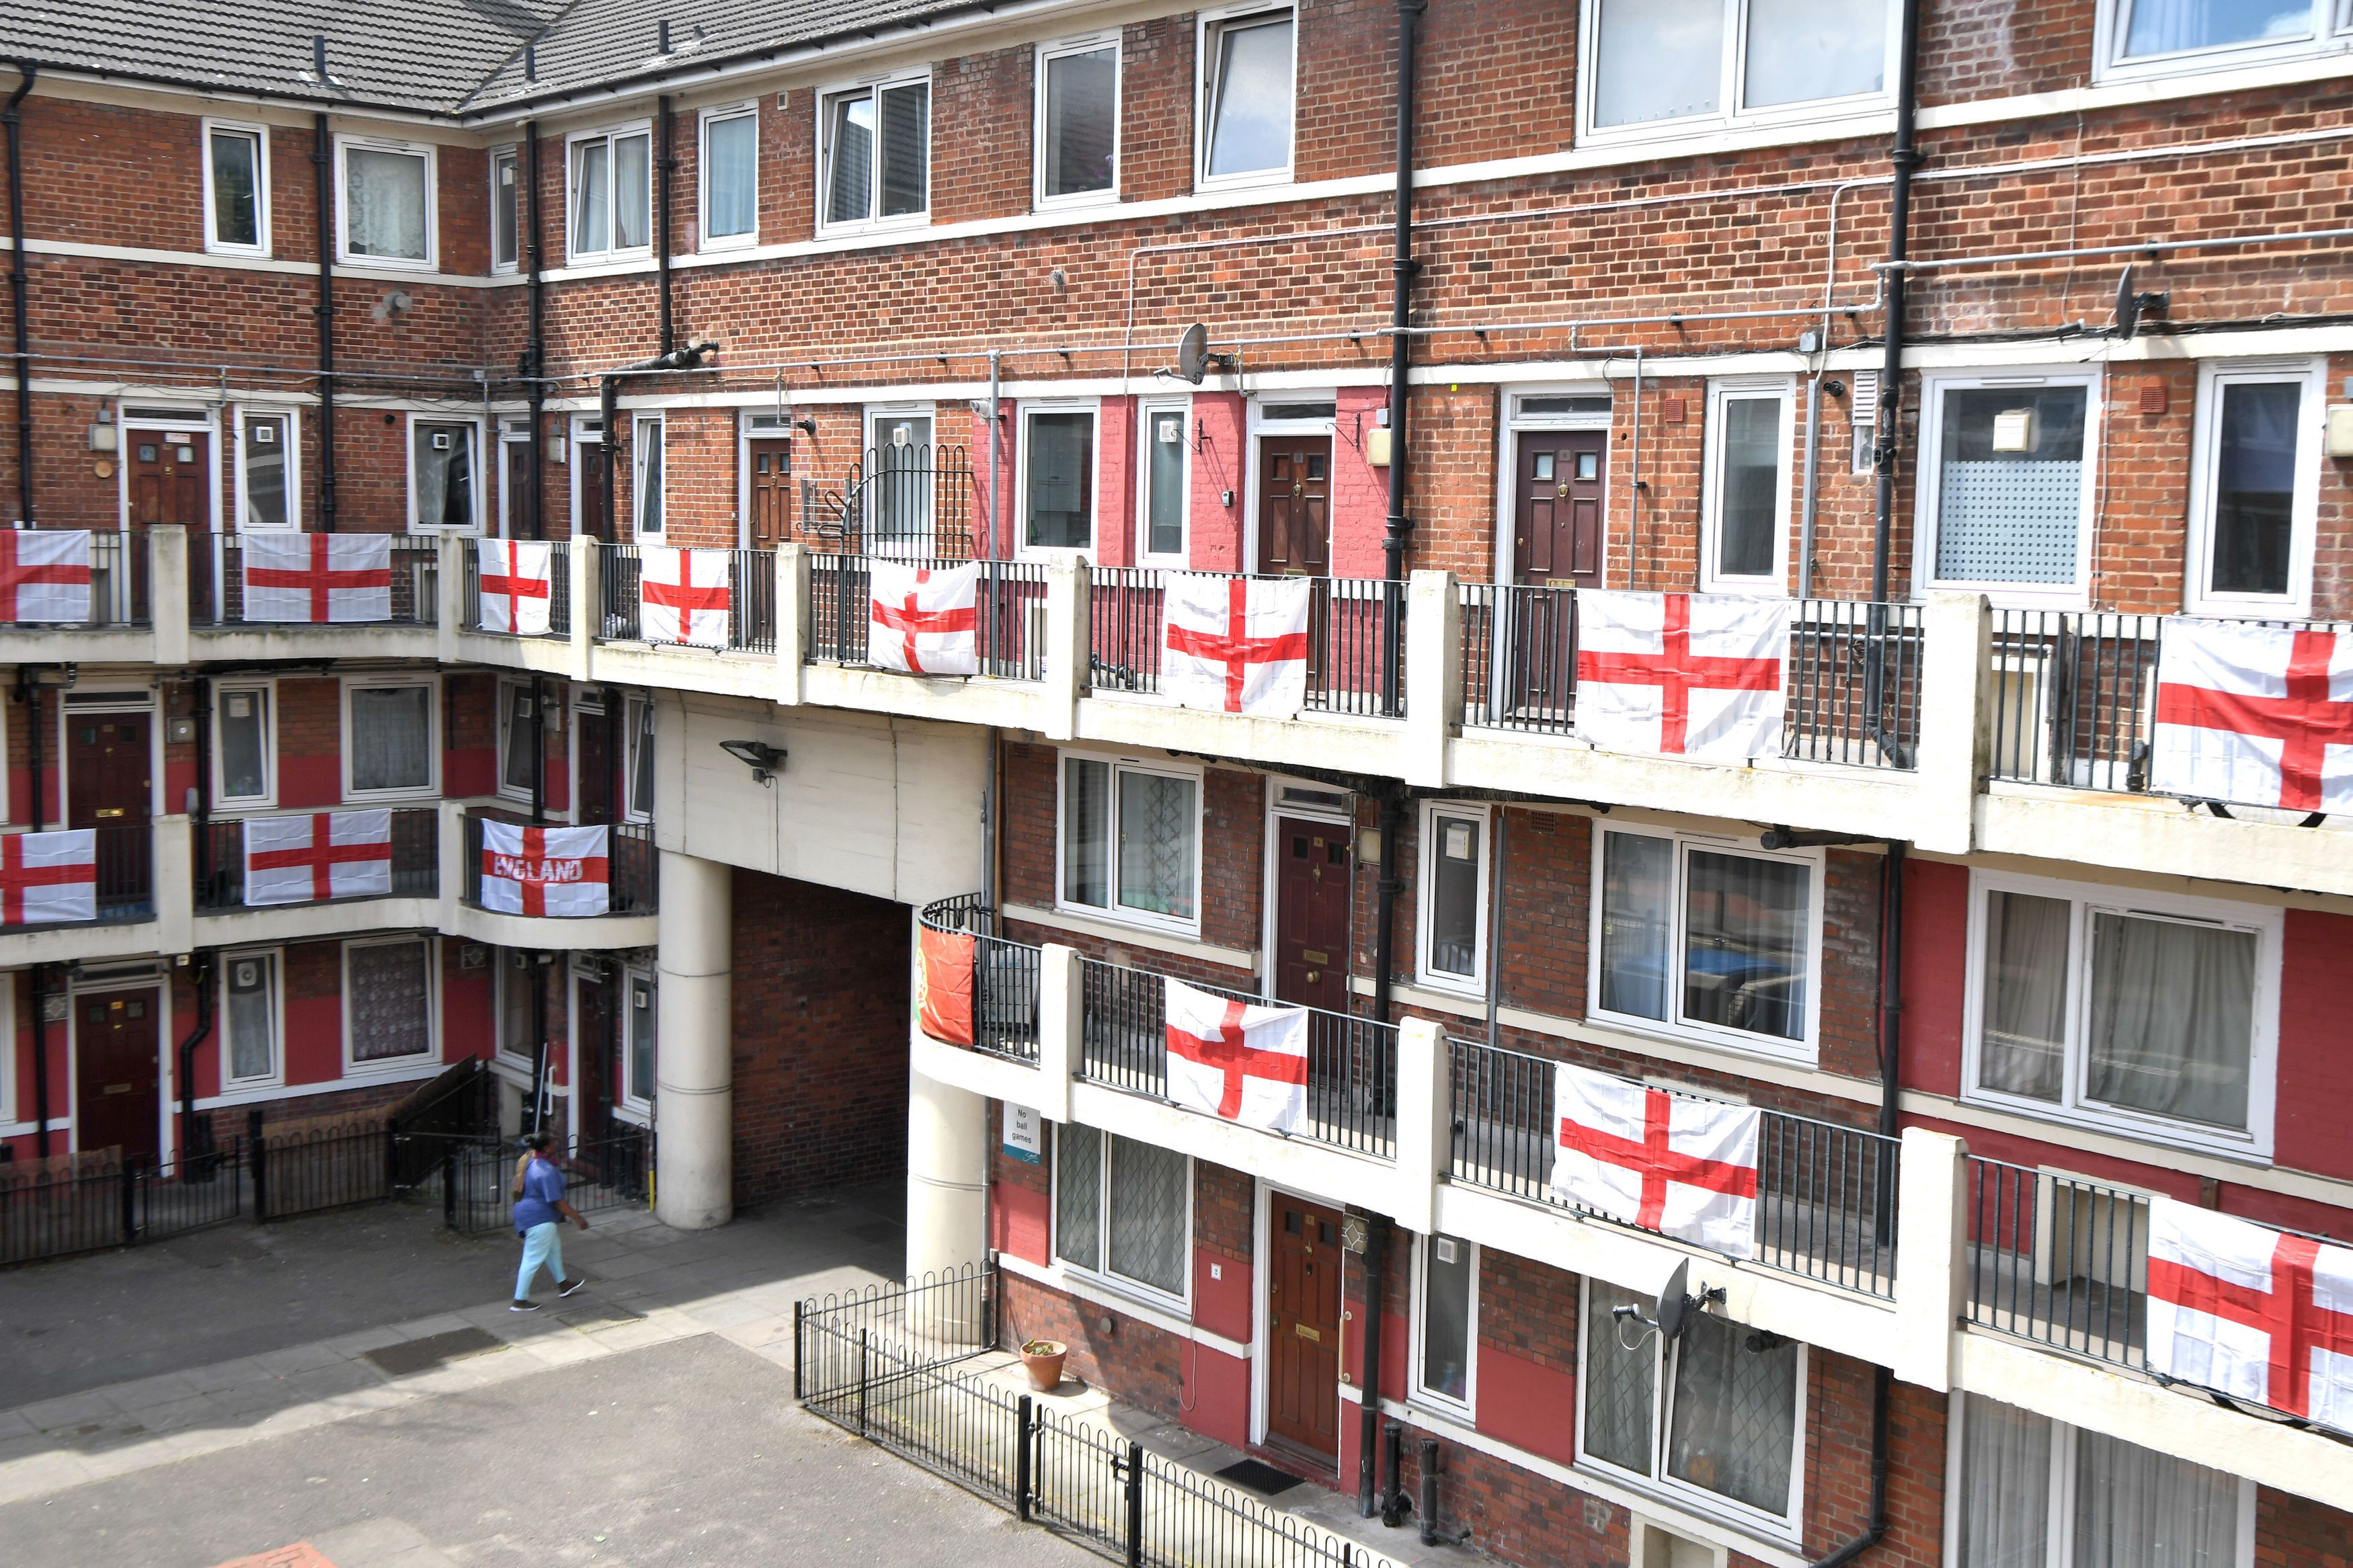 Royal Mail ban England flags 'for health and safety' during World Cup